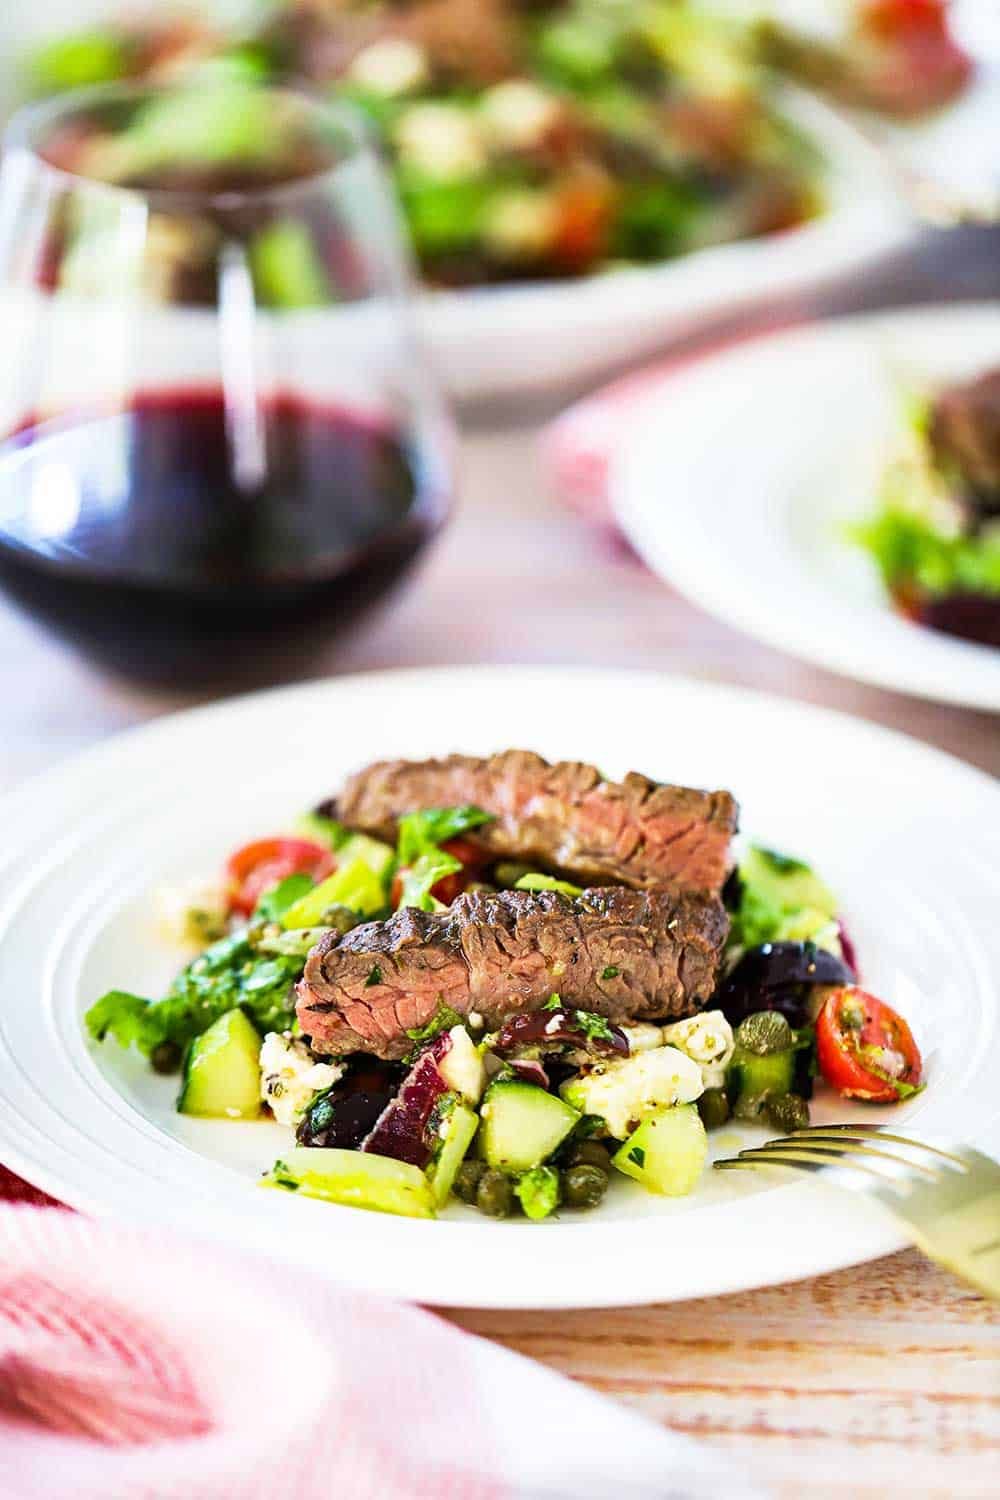 An individual plate filled with Greek salad with grilled meat sitting next to a glass of red wine.